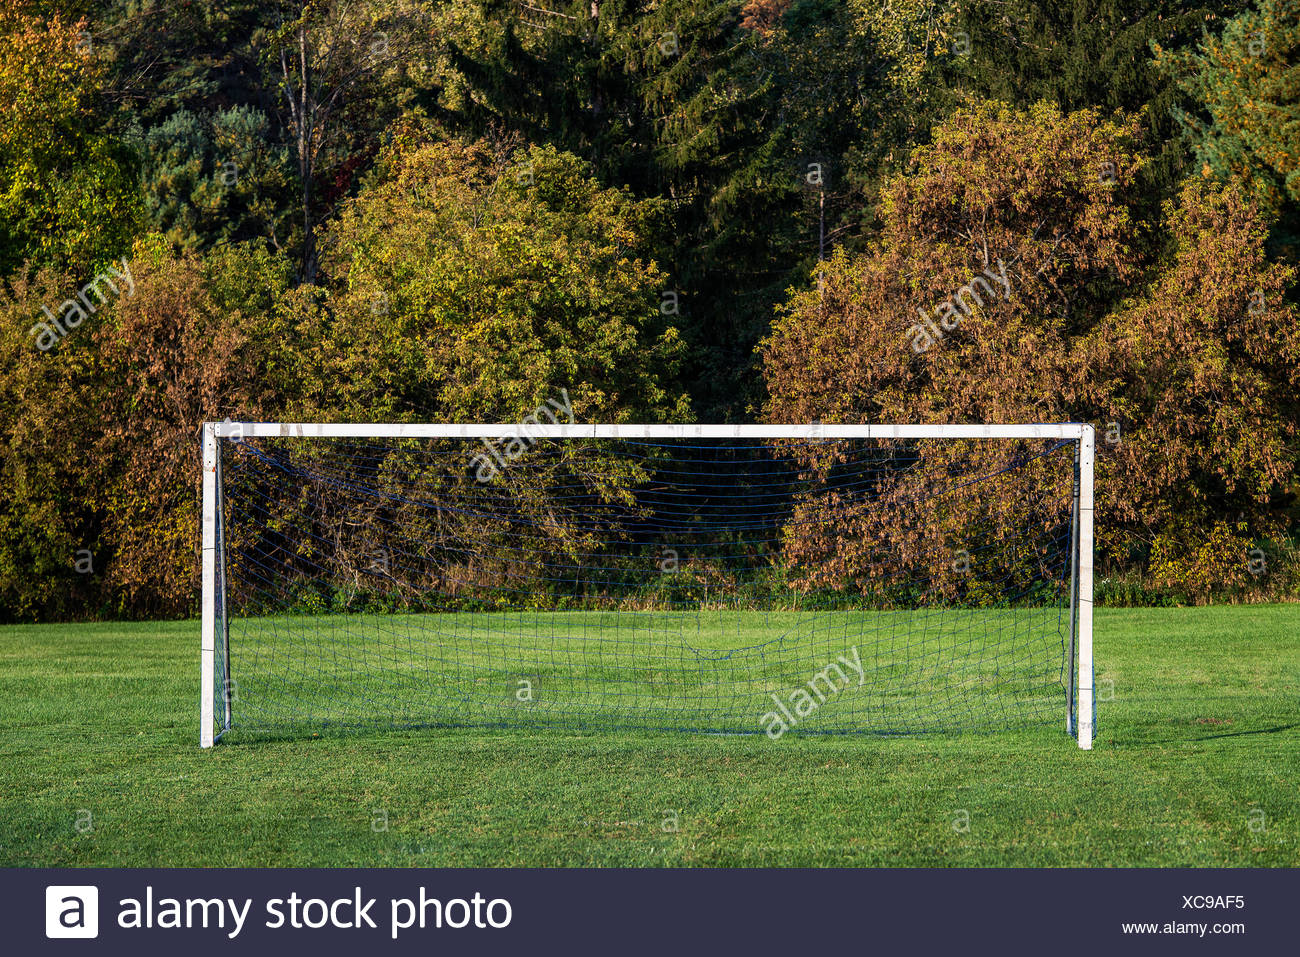 Soccer field and goal. - Stock Image